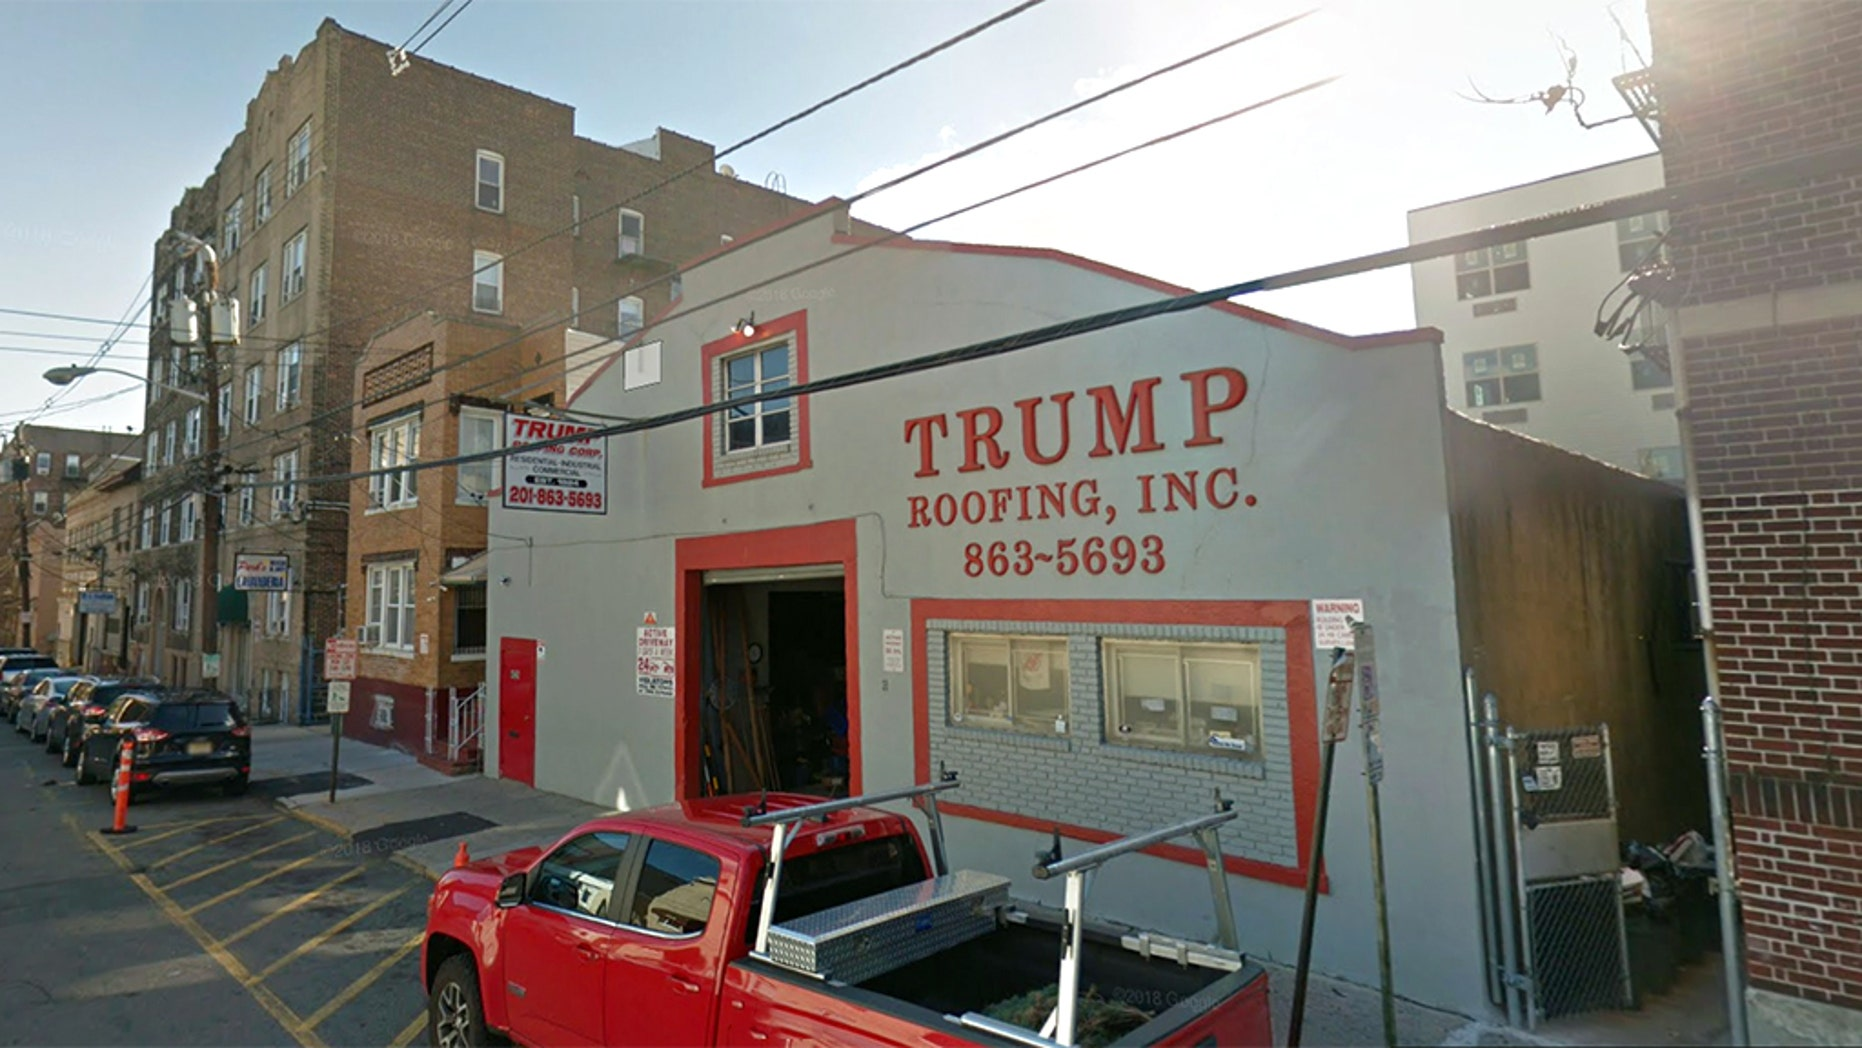 An indictment returned this weeks details an MS-13 killing that occurred on this block on July 1, 2015, in West New York, N.J.